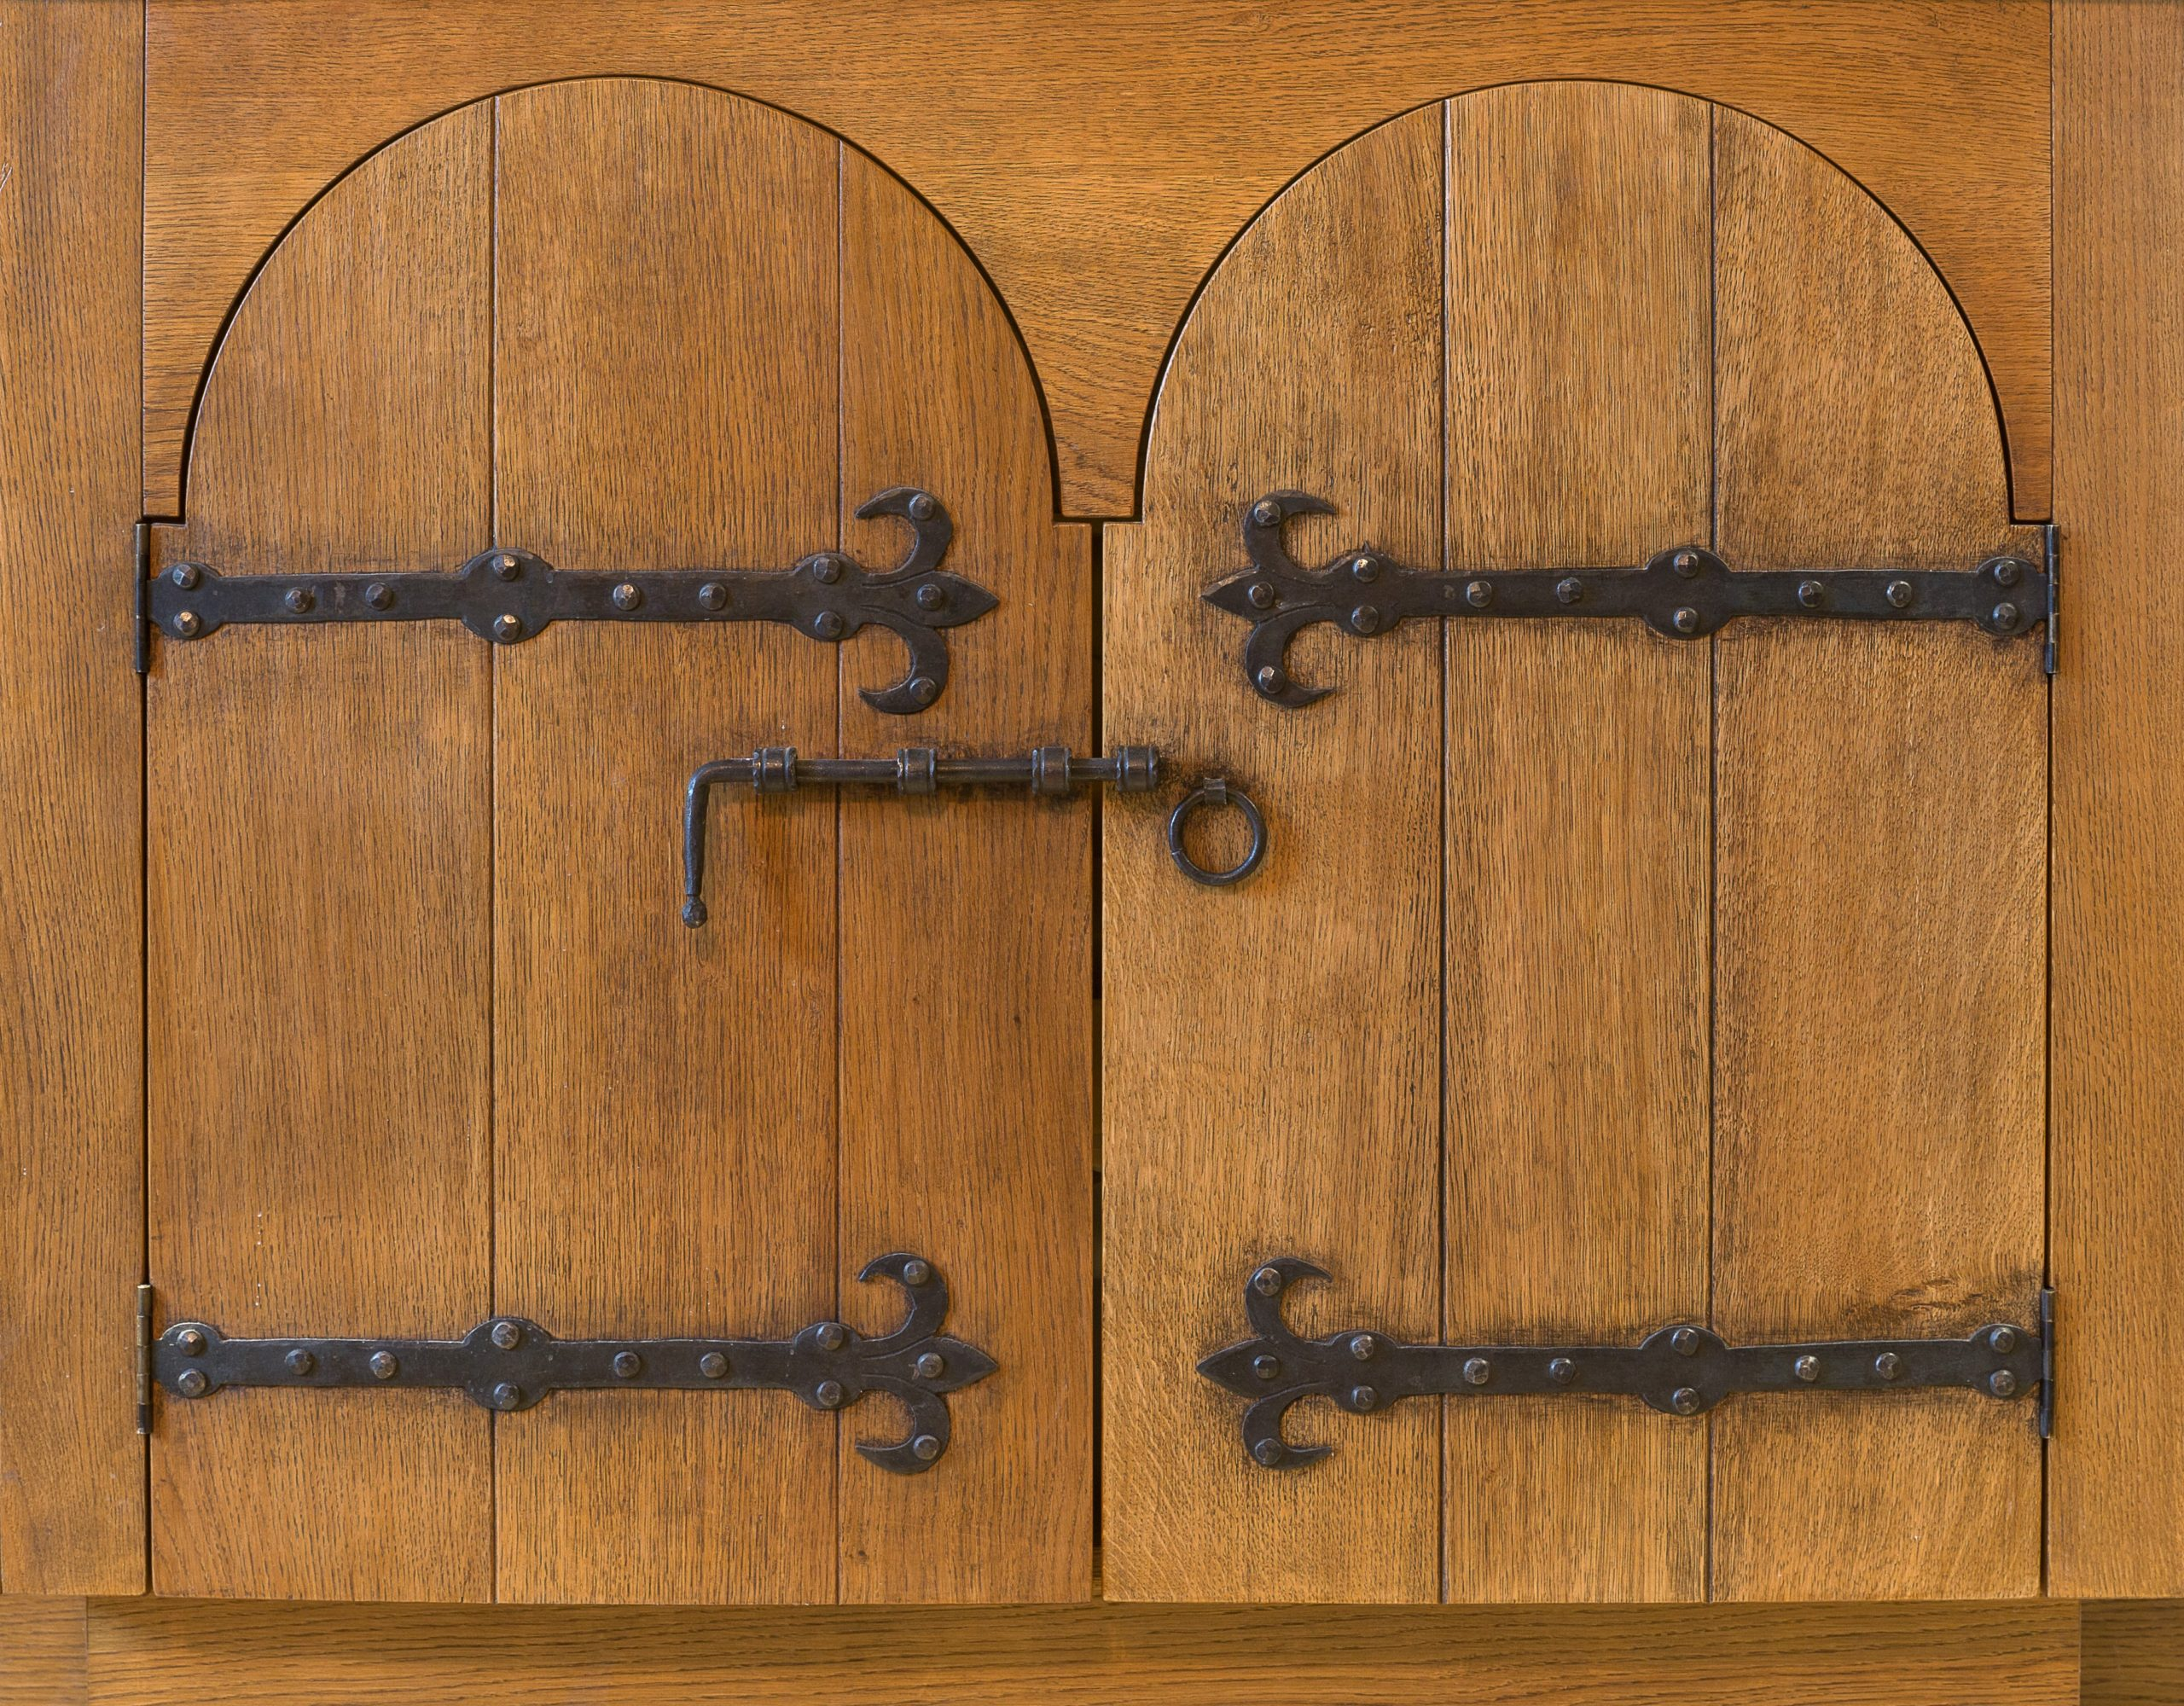 Oak cupboard doors with hand forged ironwork